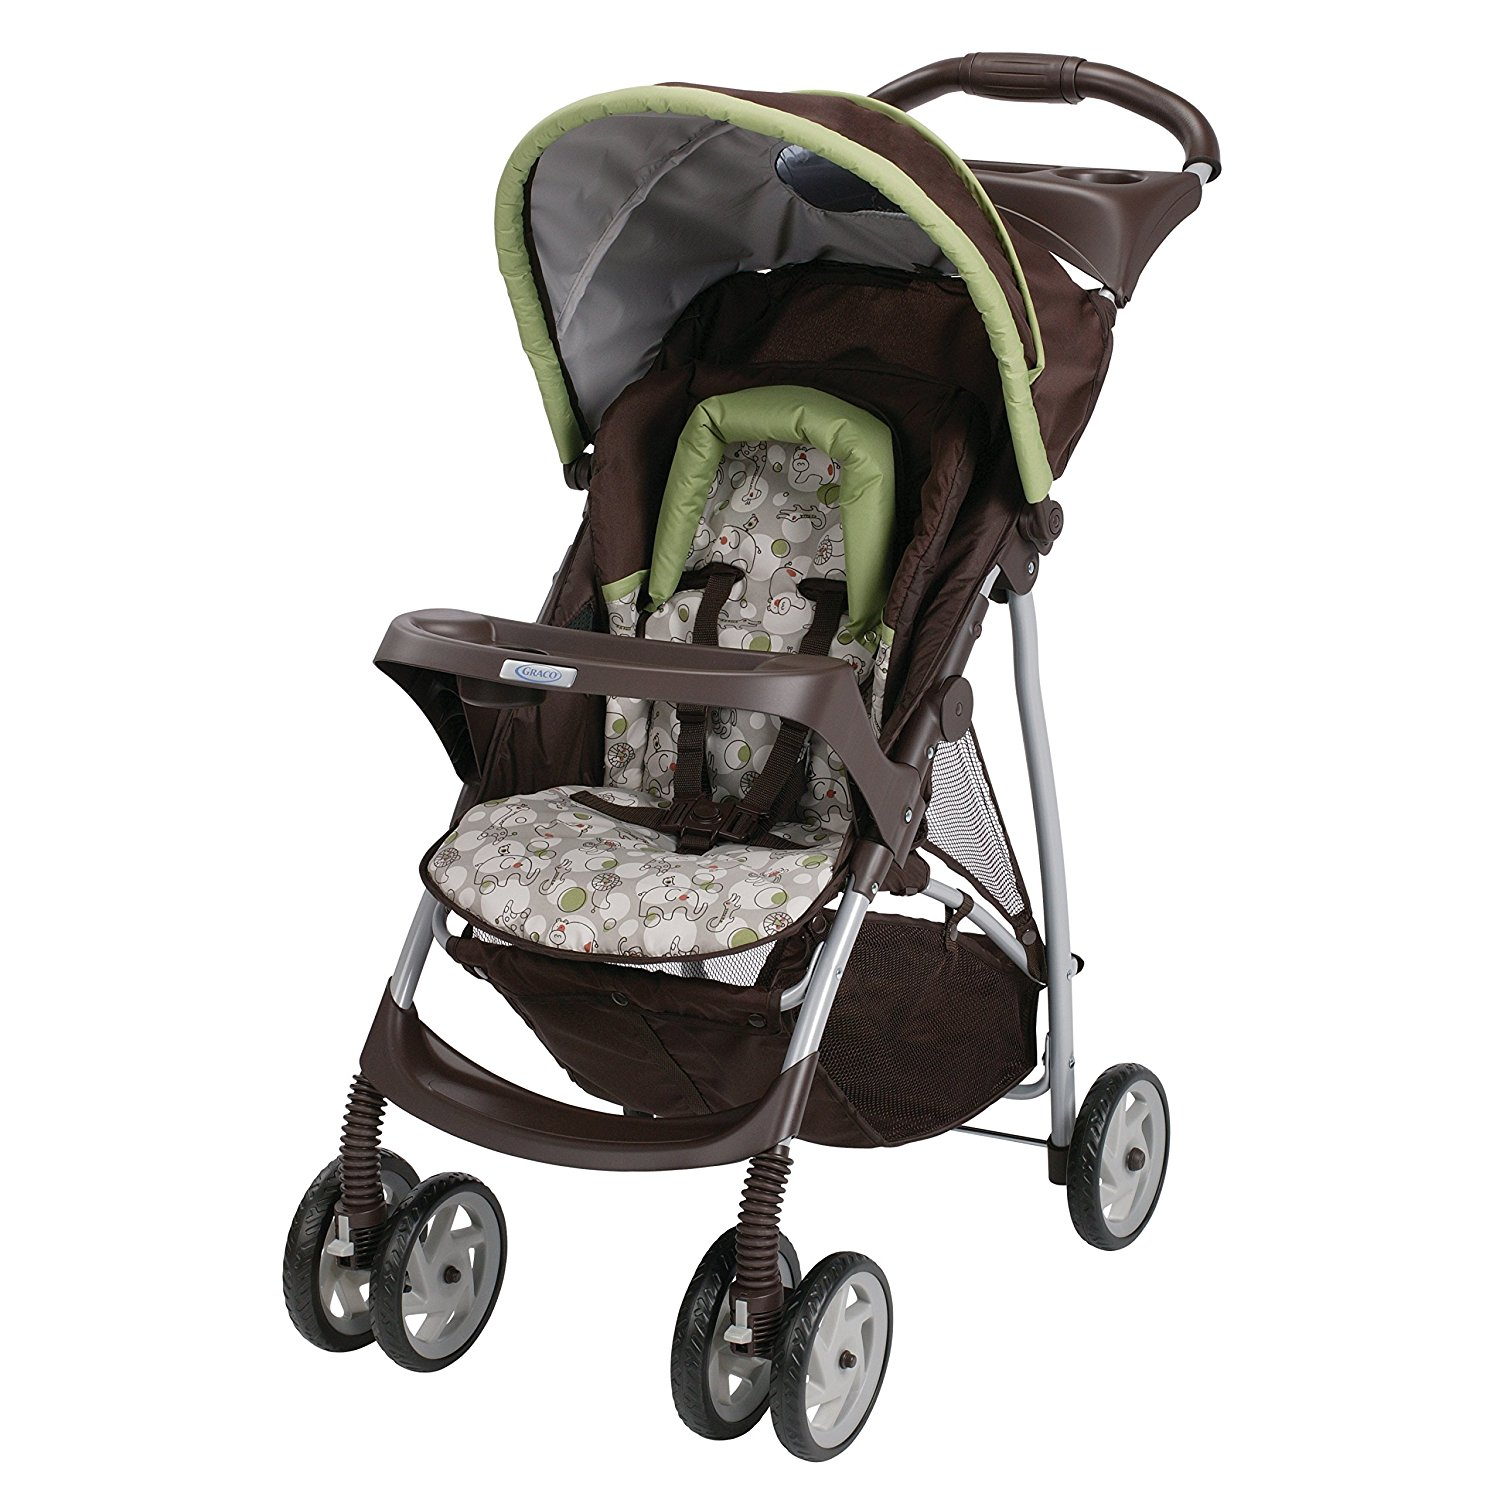 Graco LiteRider Click Connect Коляска - $ 65.35